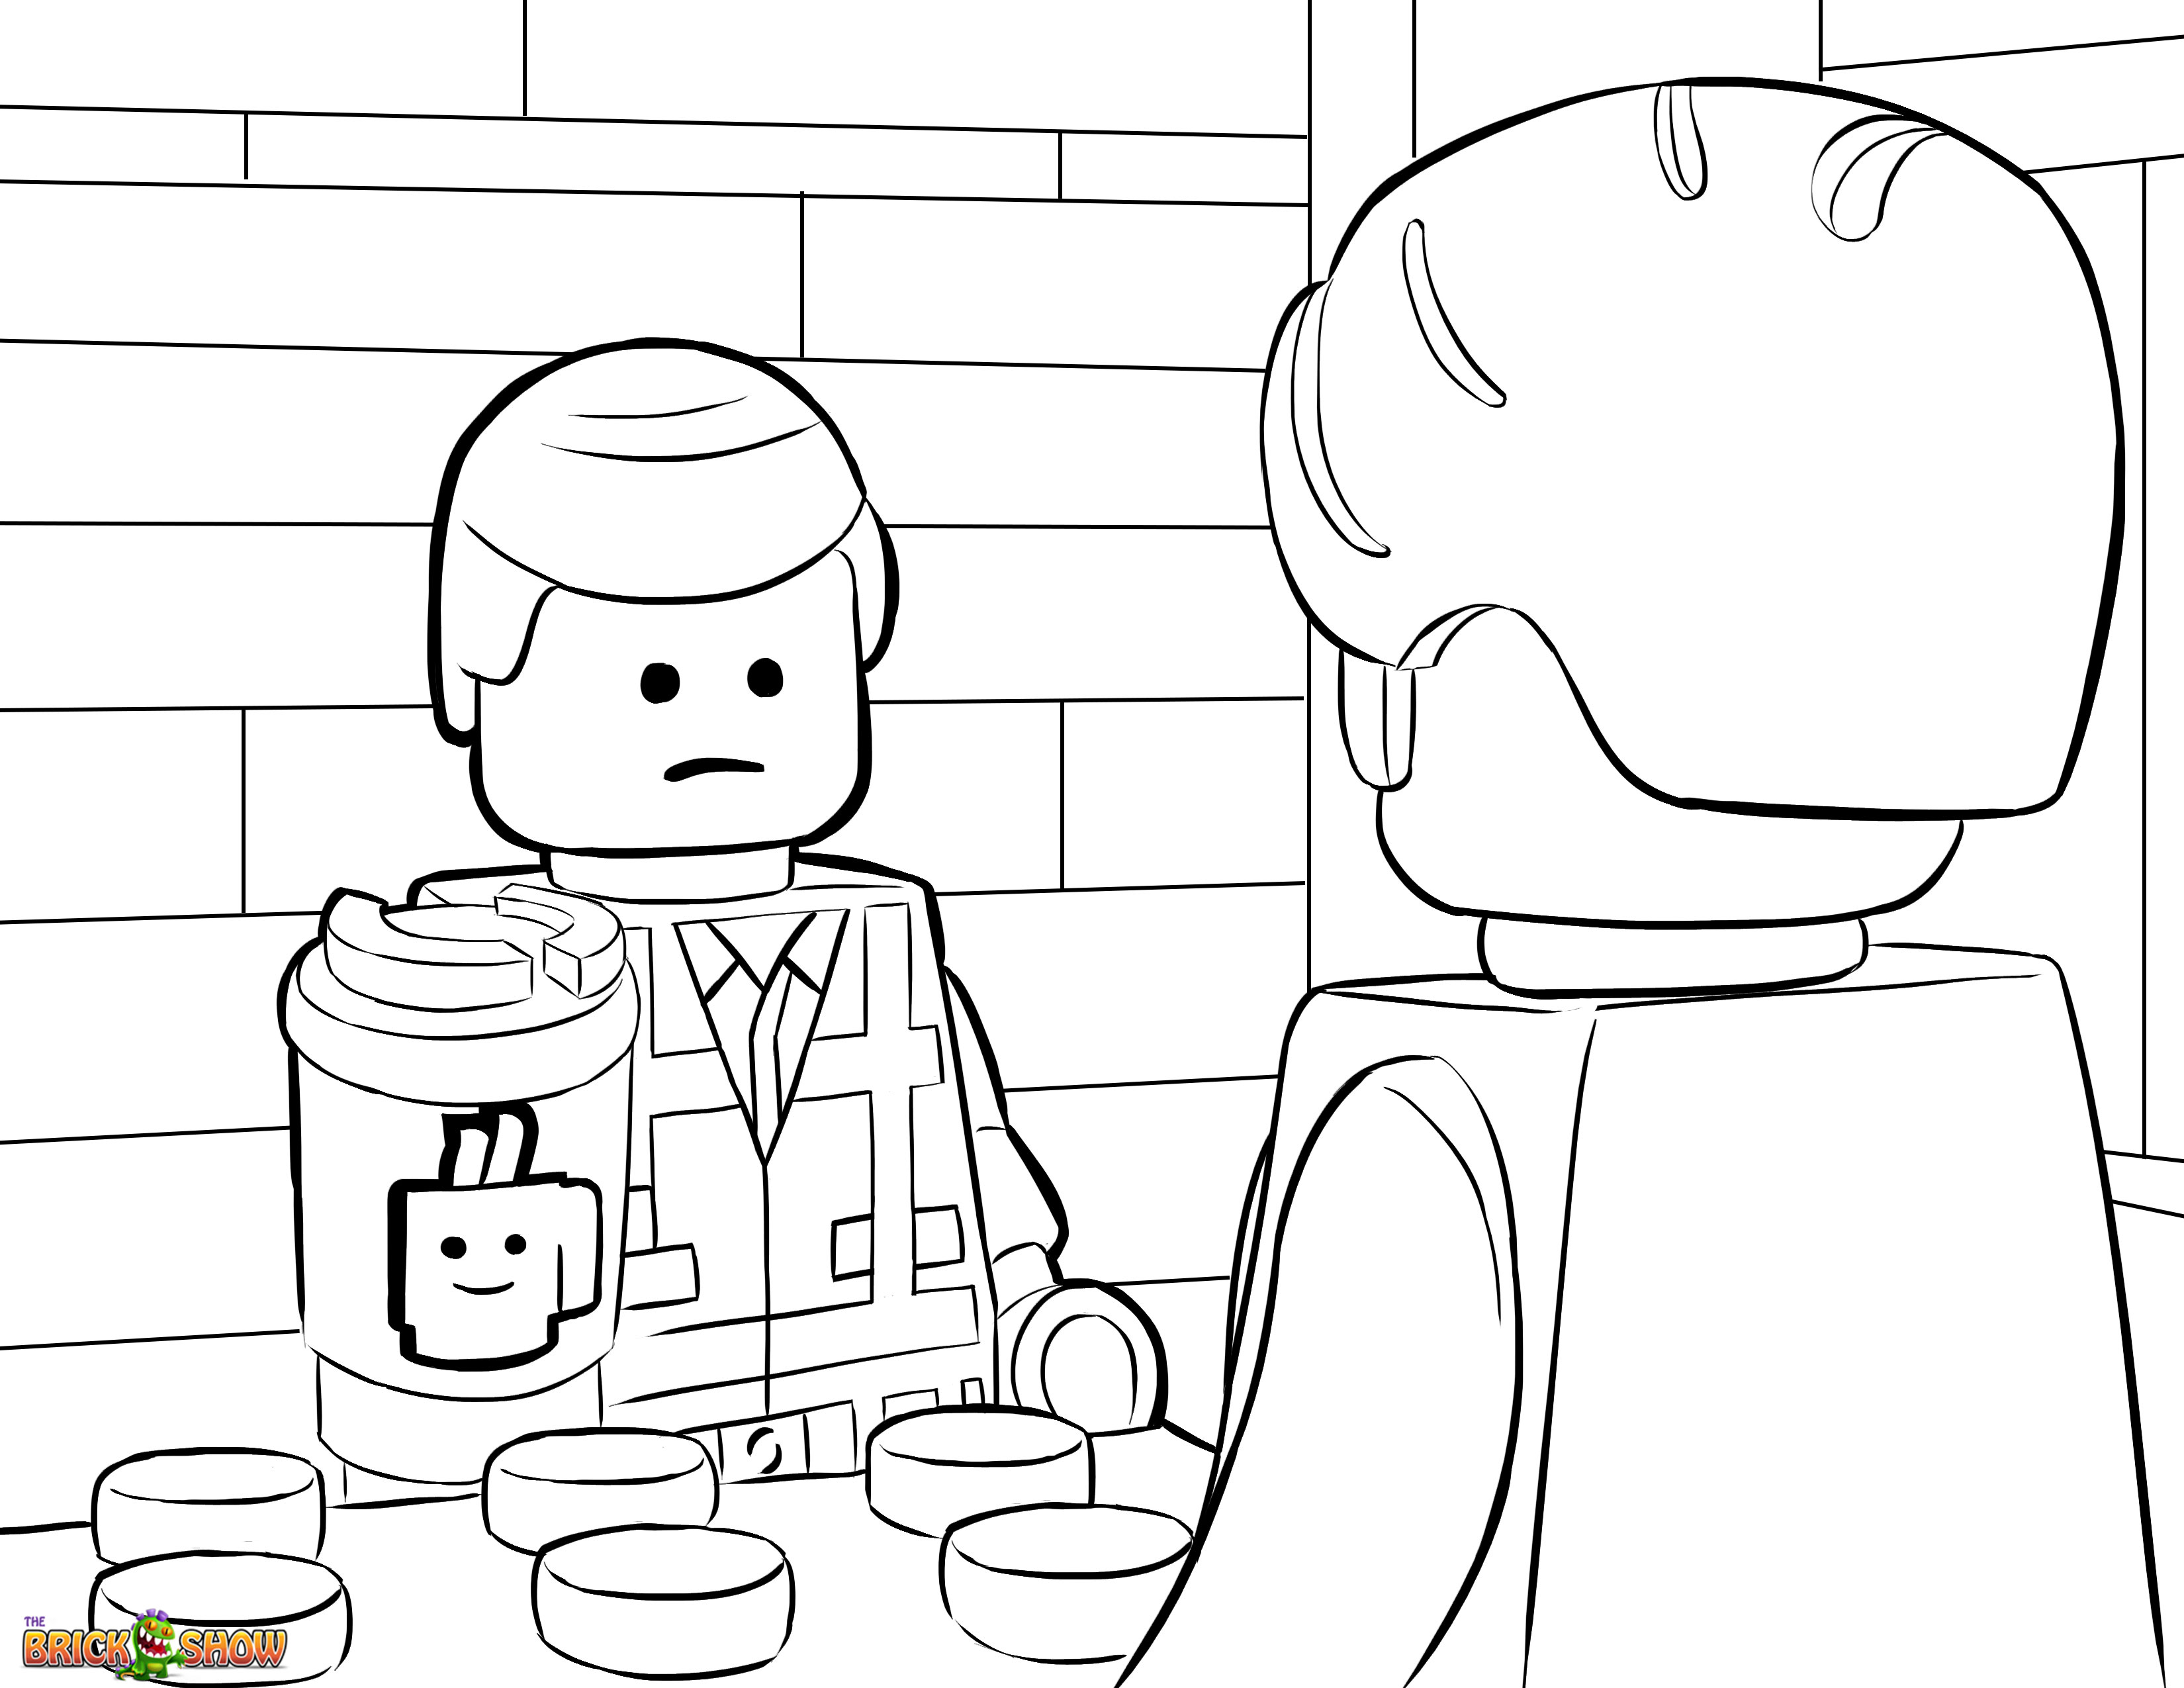 Lego_Coloring_Sheets_01